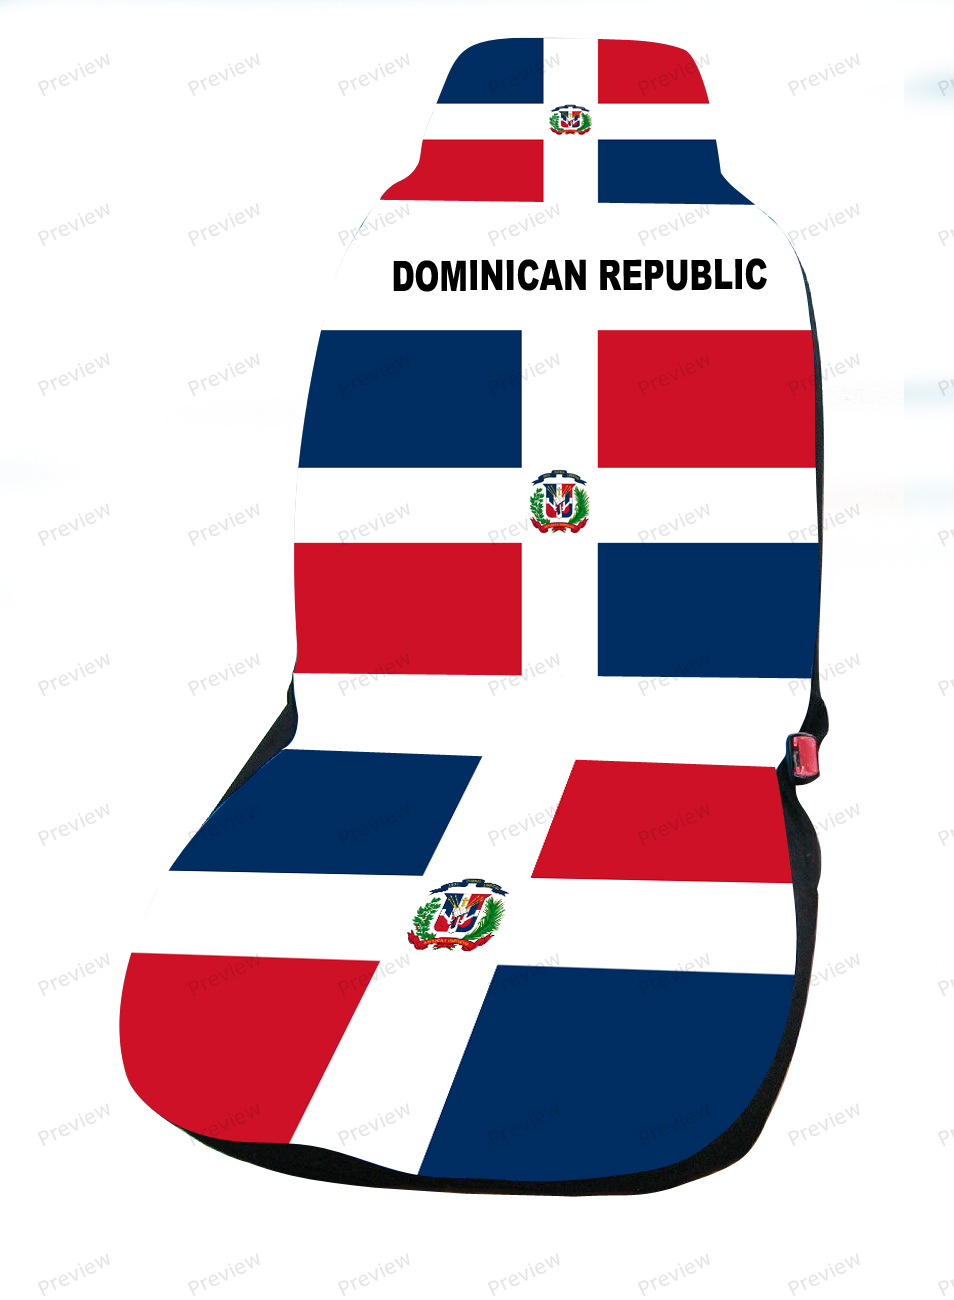 images/Dominican republic image car cover seat.jpg